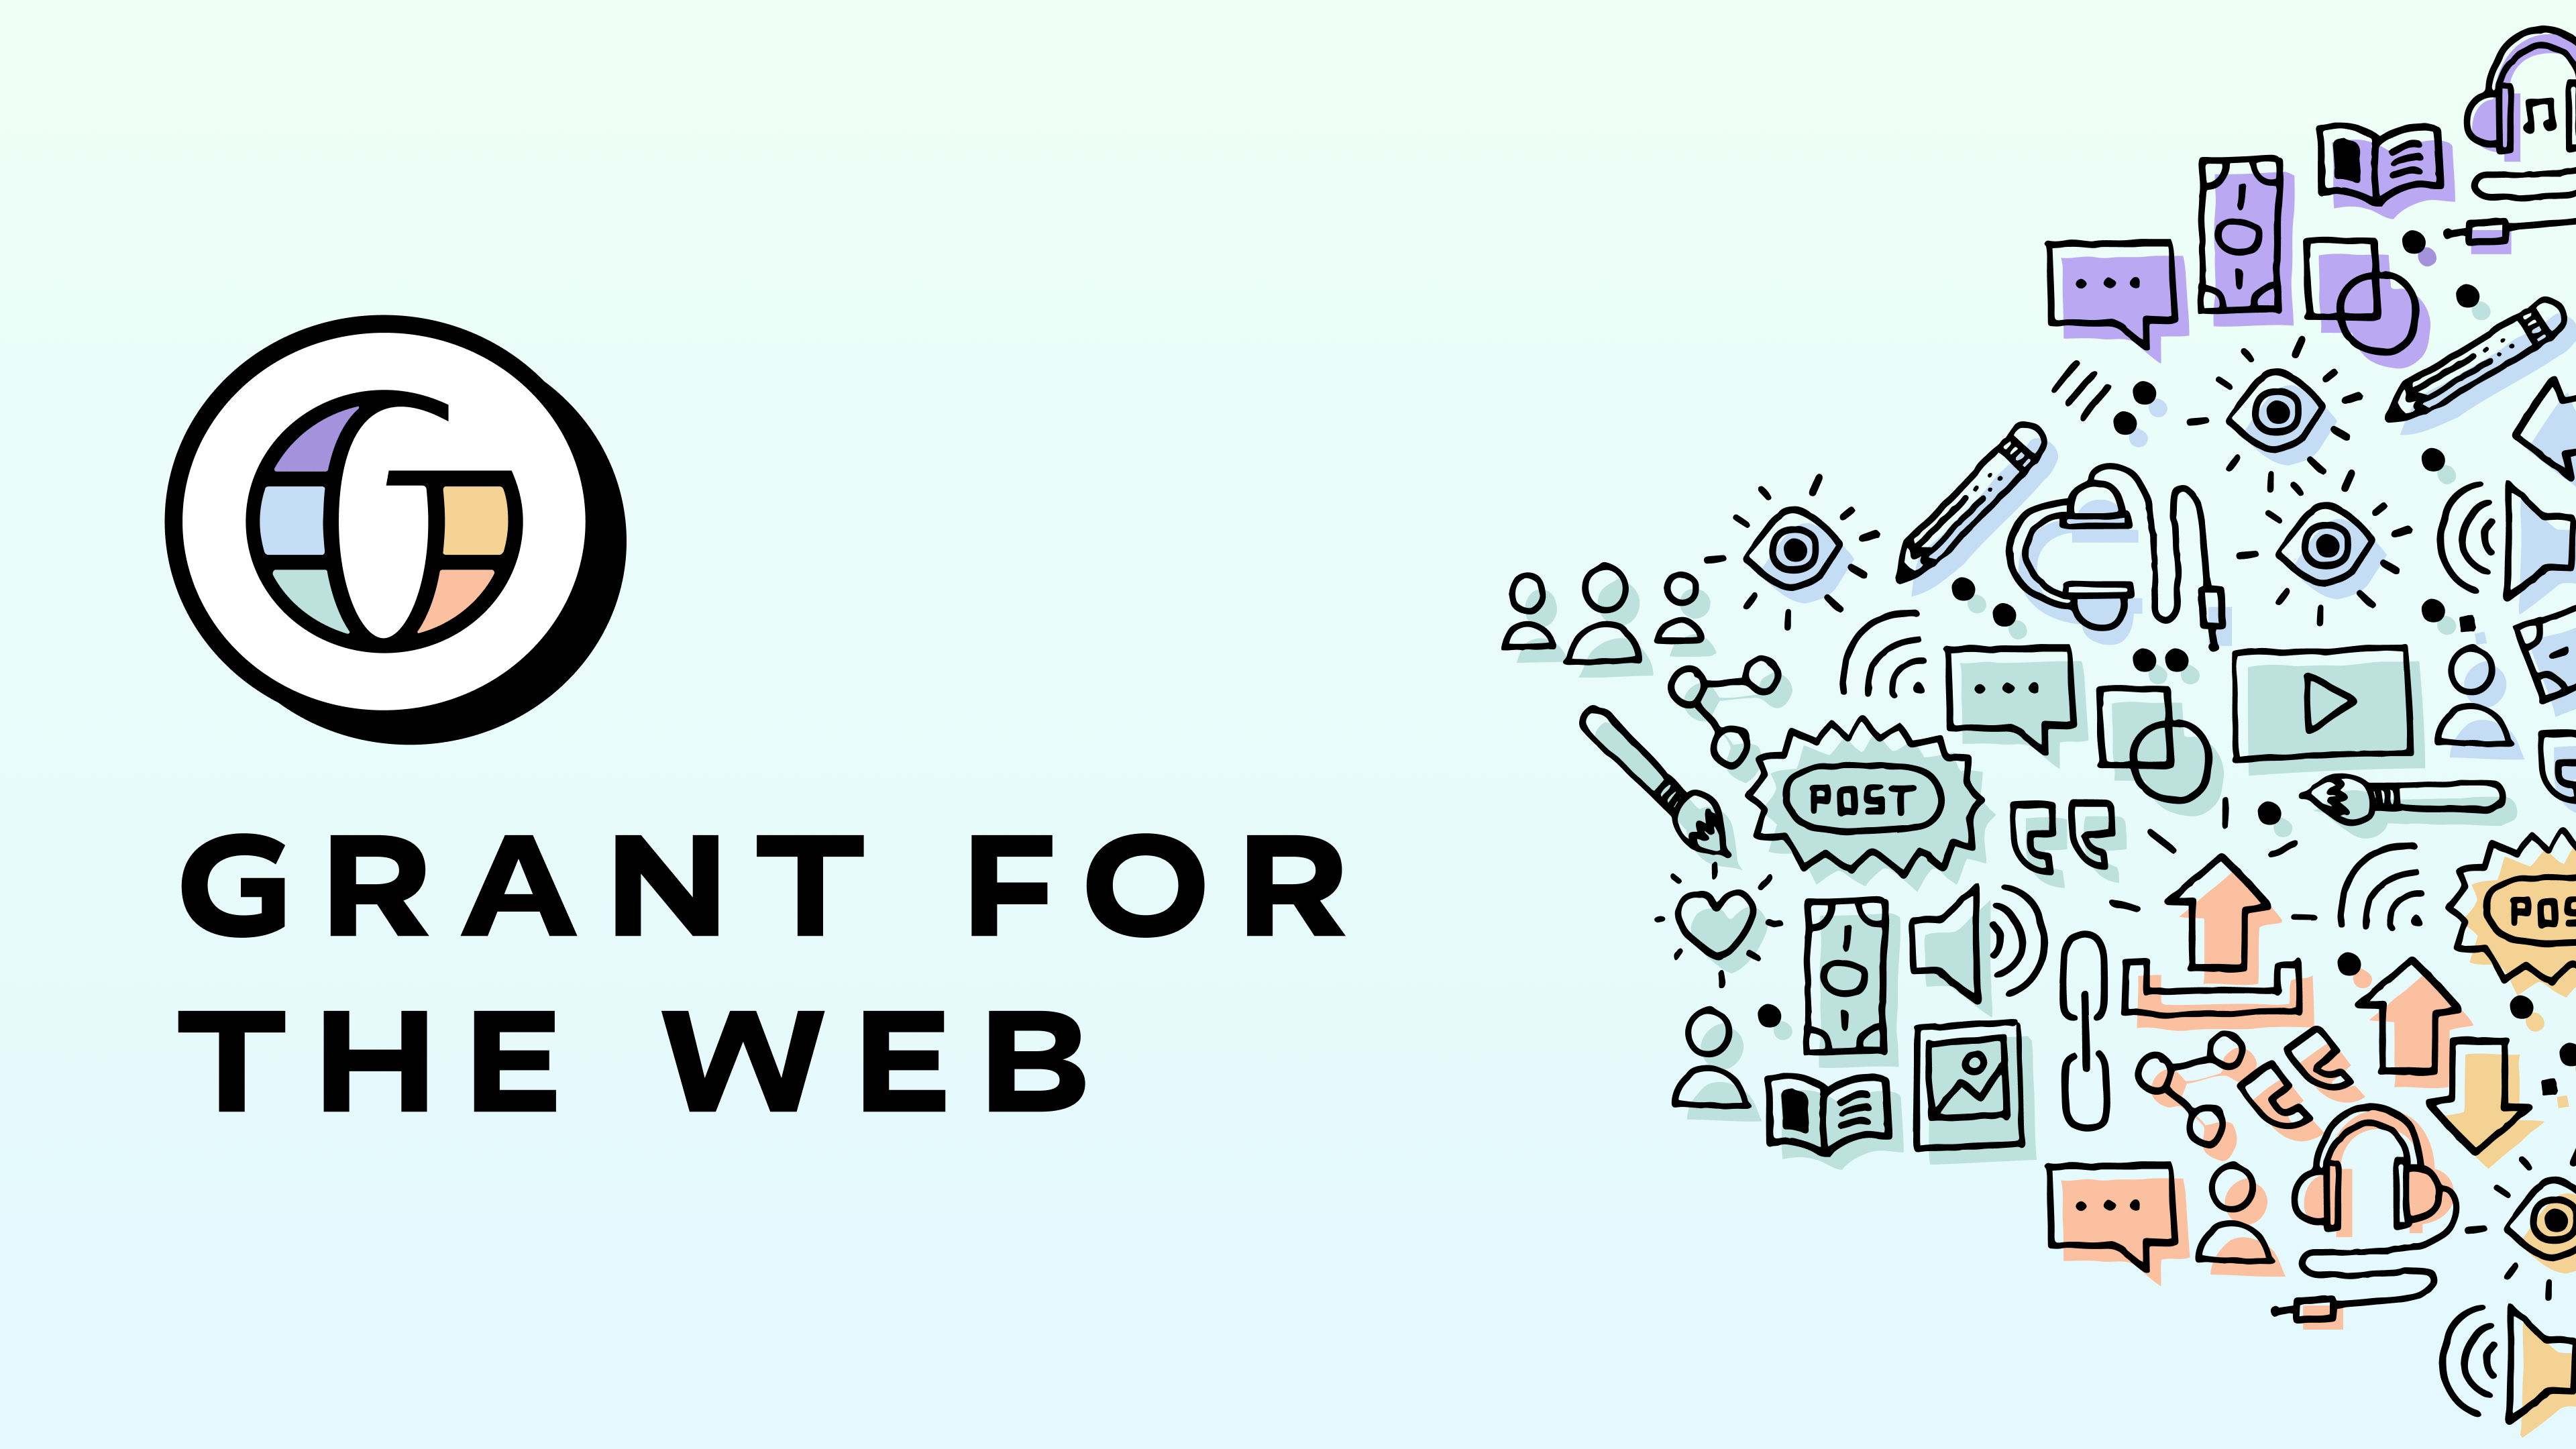 Grant for the Web